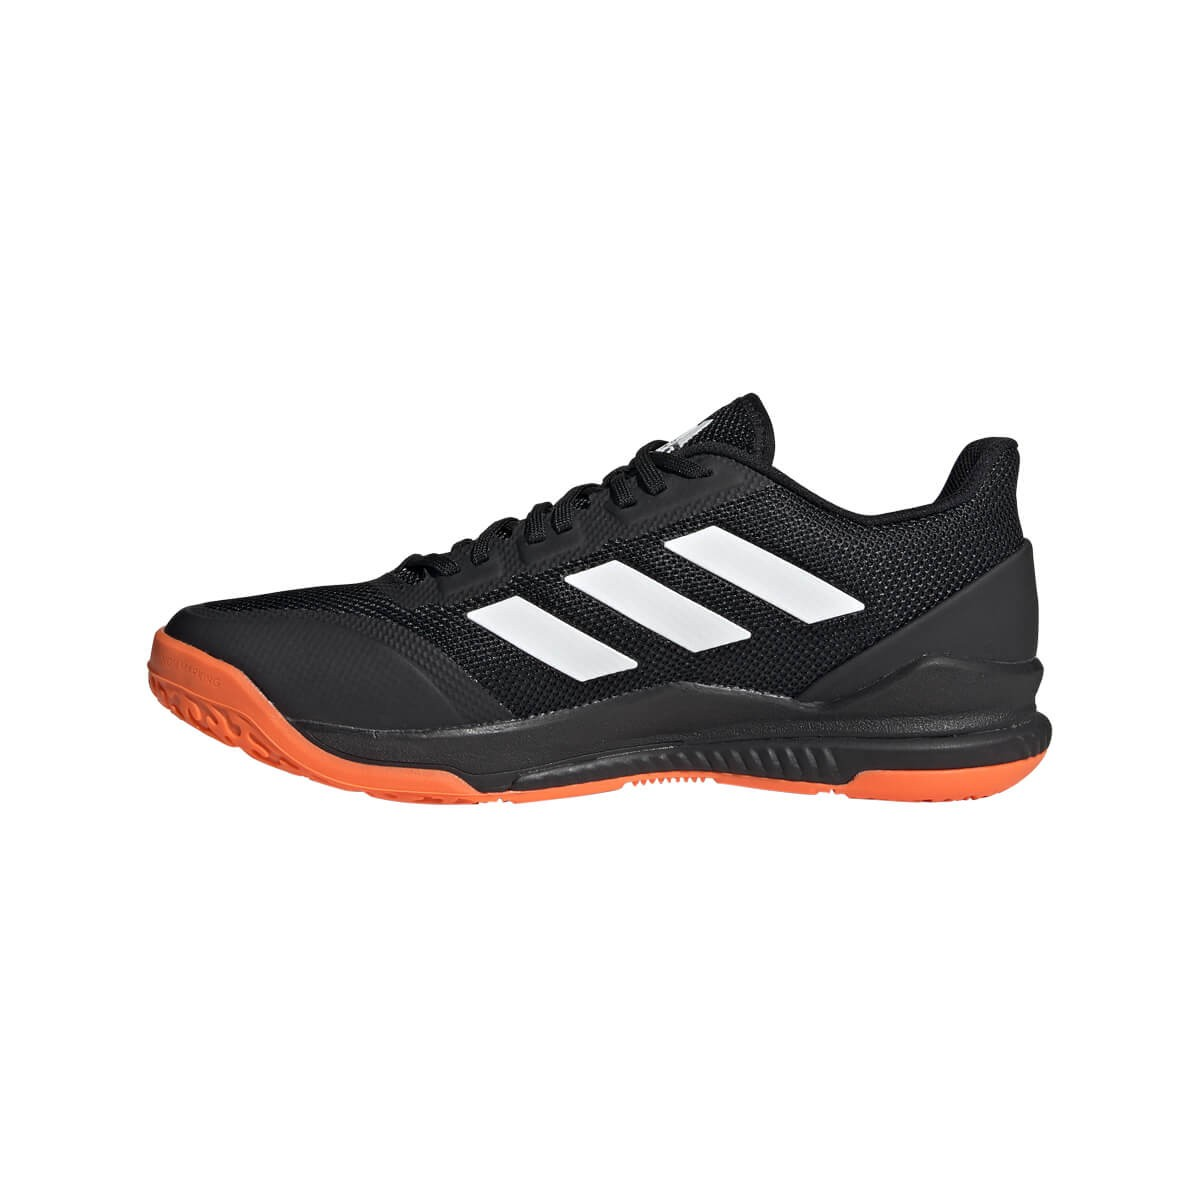 CHAUSSURES ADIDAS HOMME INDOOR STABIL BOUNCE